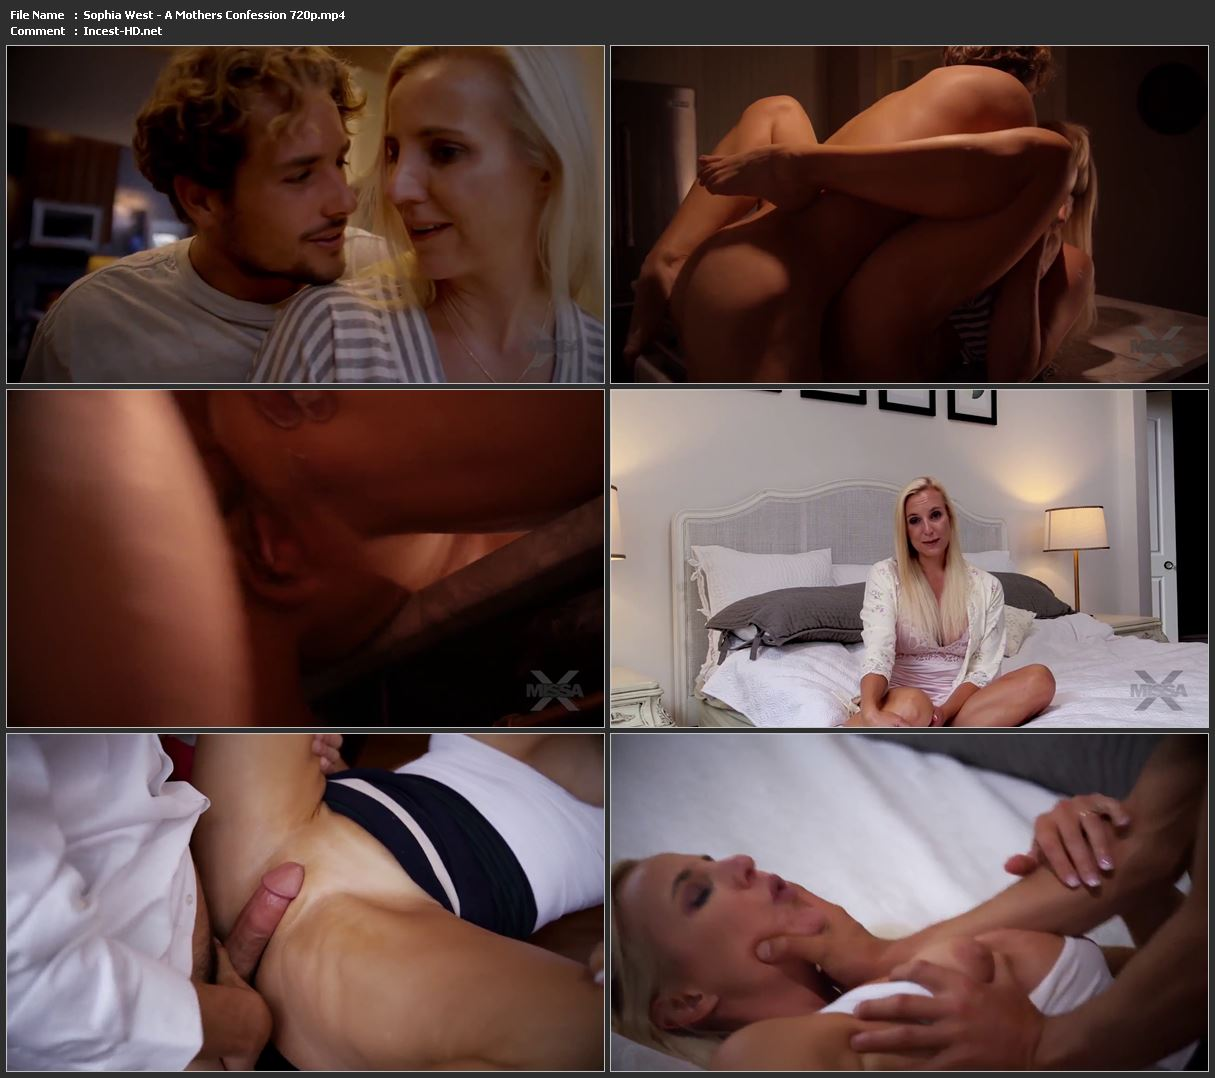 Sophia West - A Mothers Confession 720p